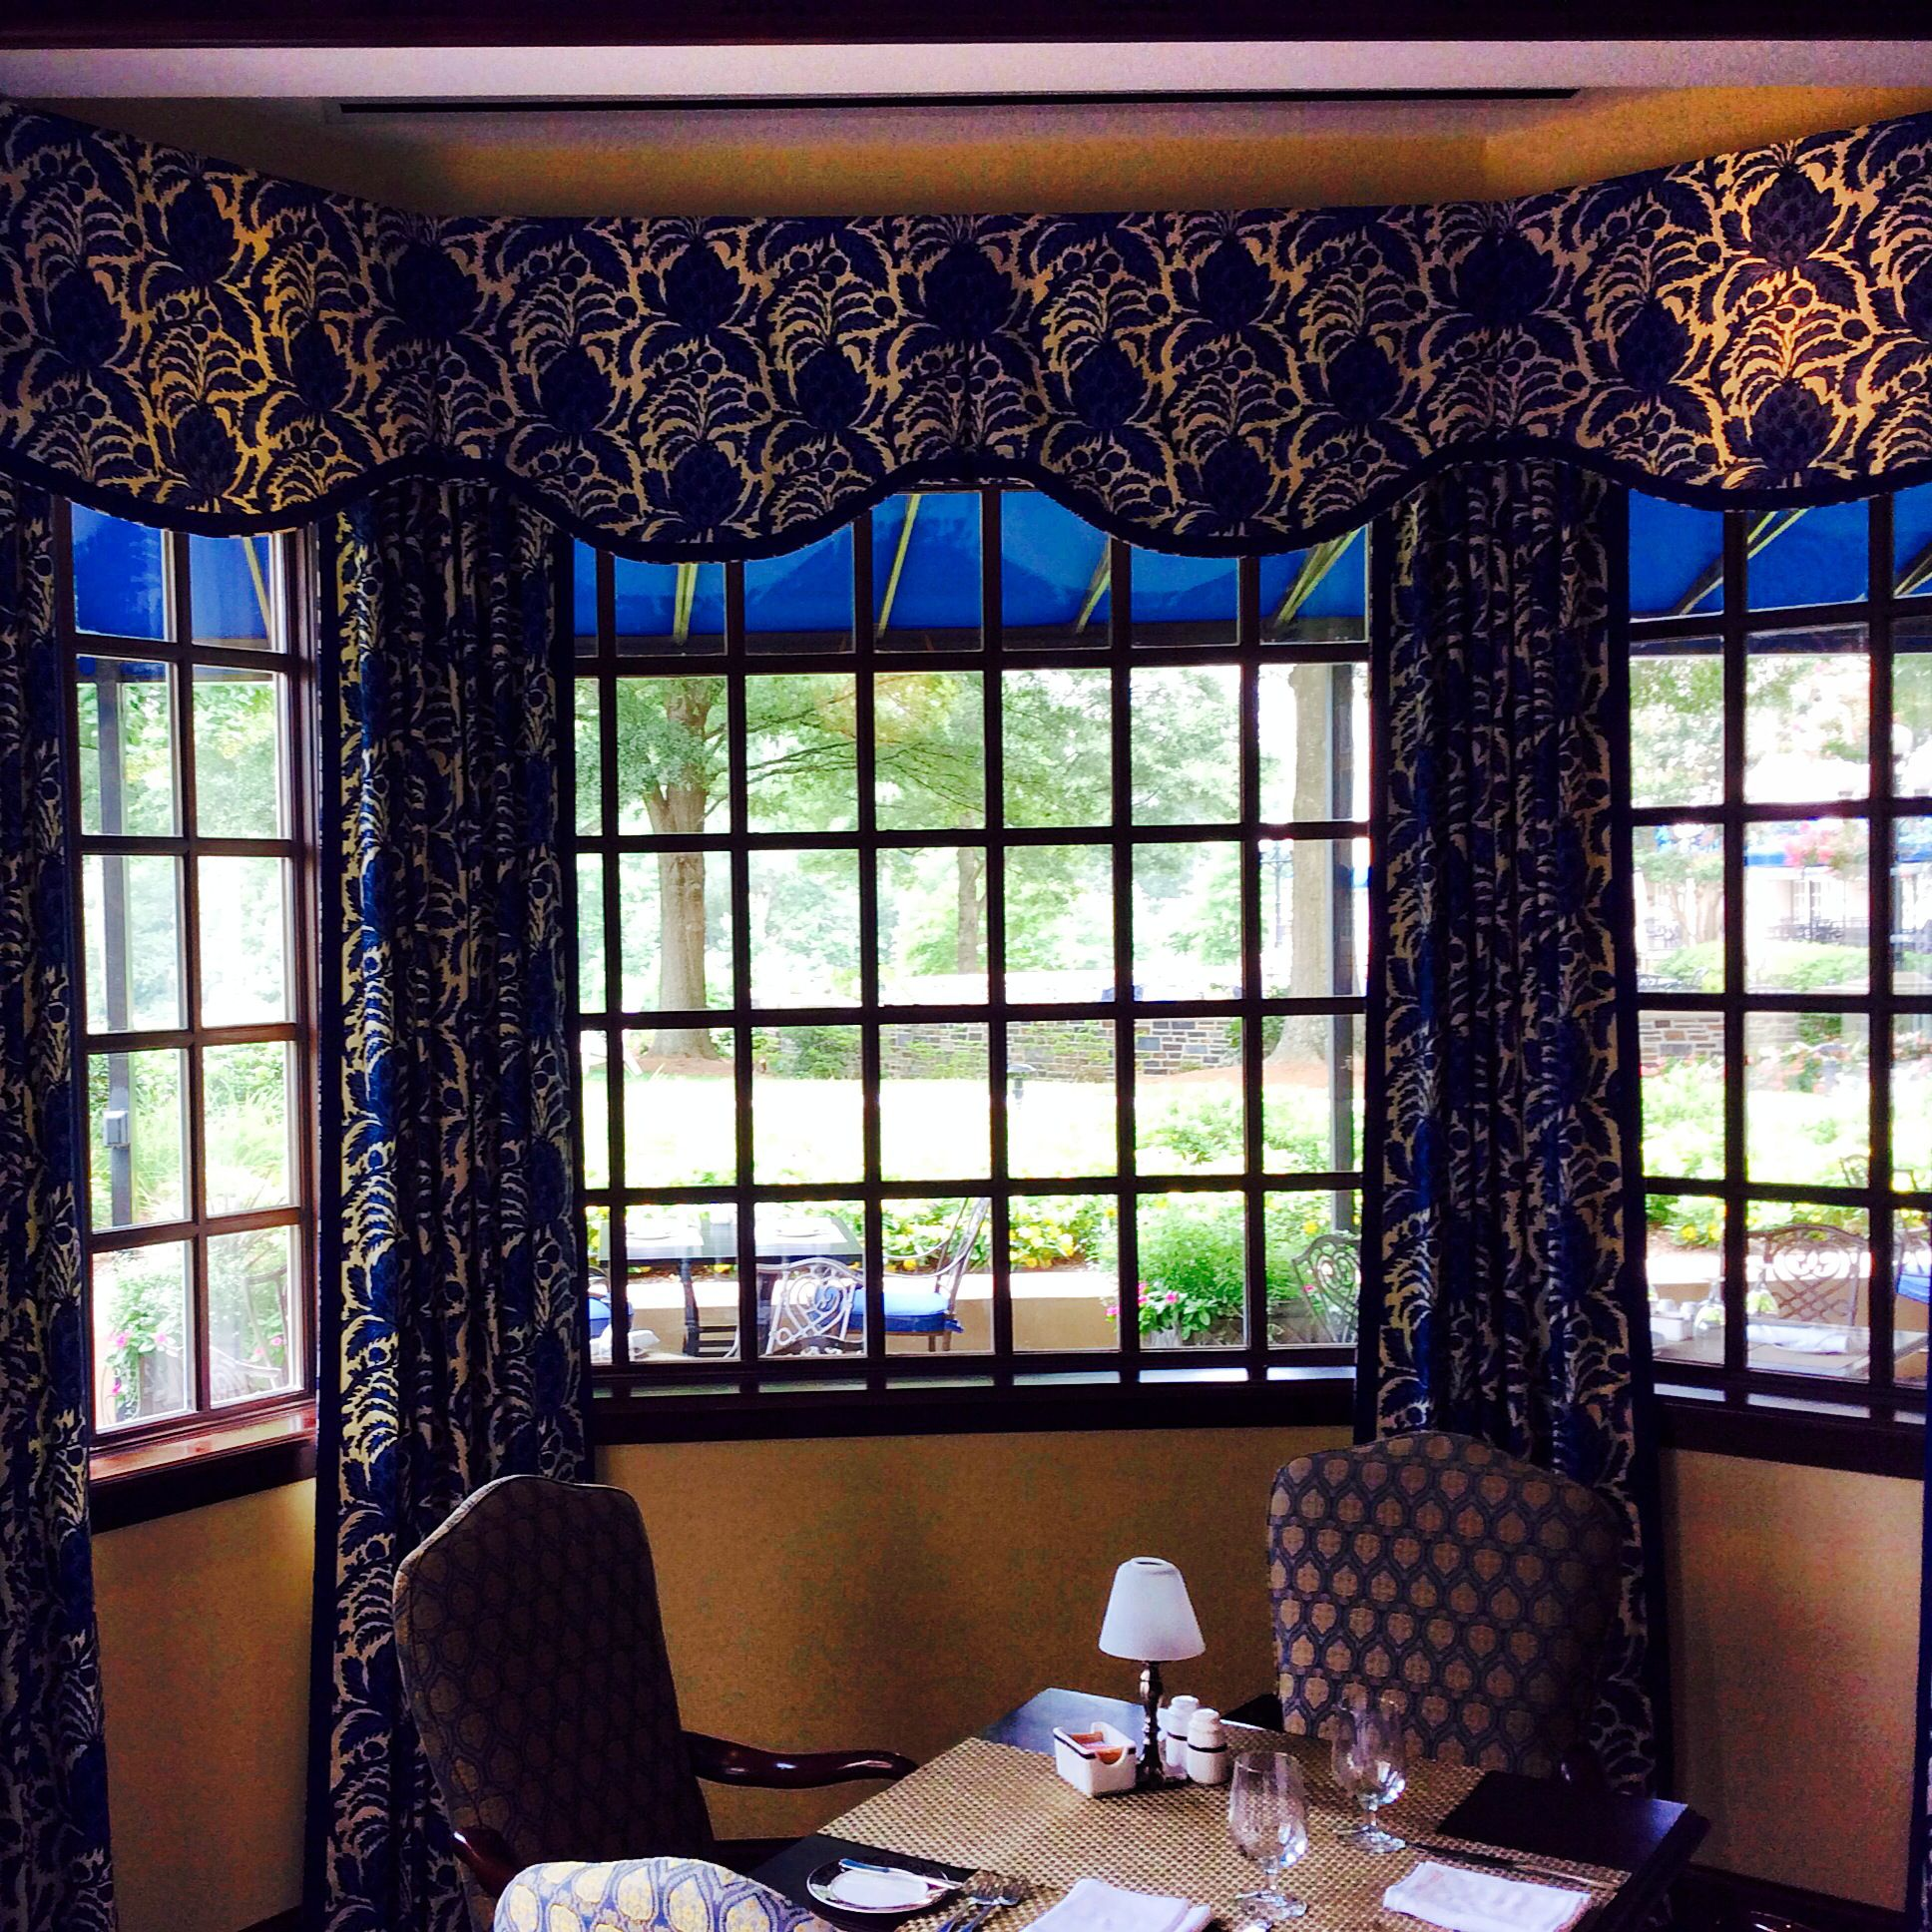 Fairview Dining Room New The Beautiful New Duke Blue Window Treatments In The Fairview 2018